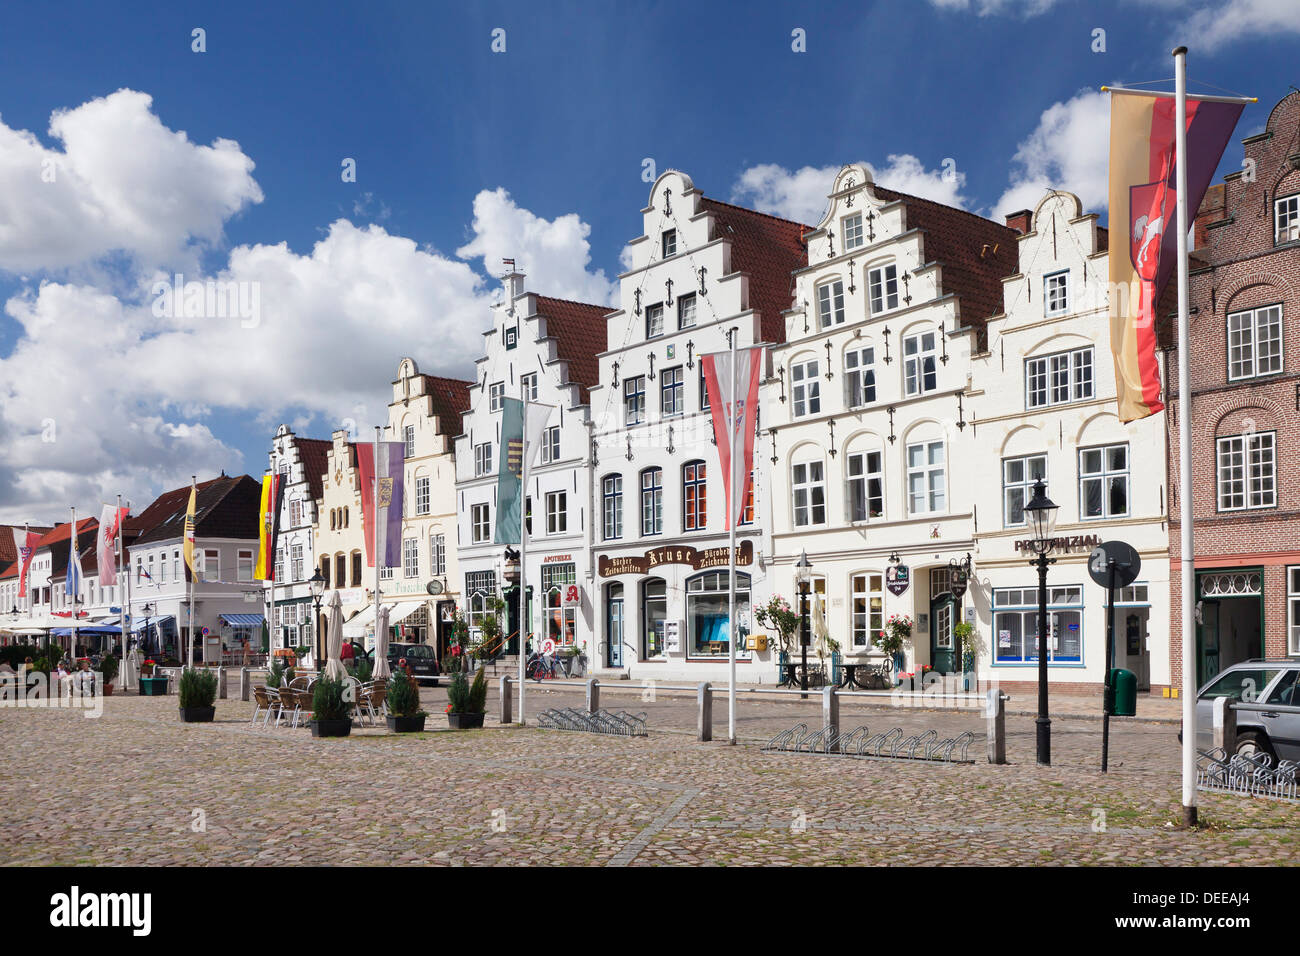 Market square with Dutch renaissance buildings, Friedrichstadt, Nordfriedland, Schleswig Holstein, Germany, Europe - Stock Image